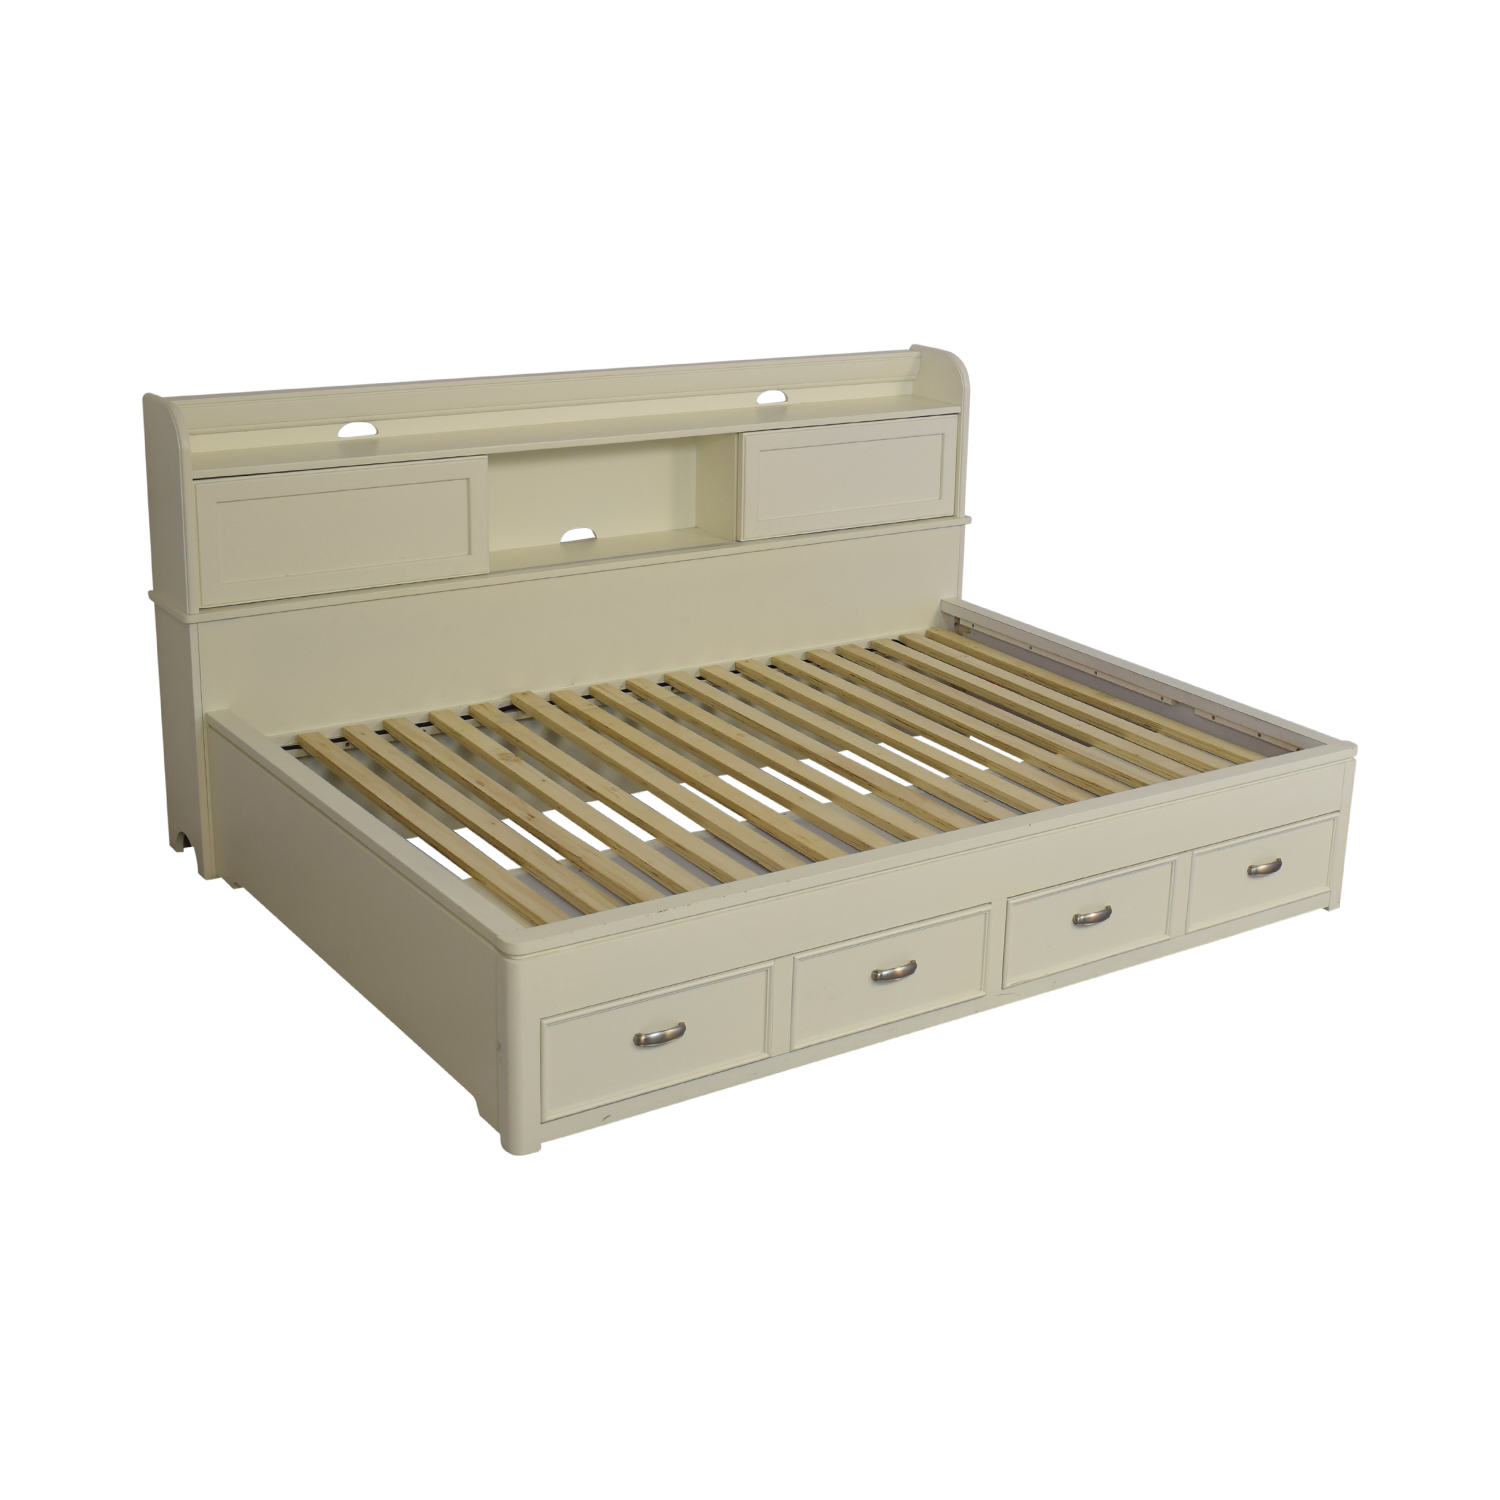 Legacy Classic Furniture Legacy Classic Kids Jeyden Full Storage Bed price